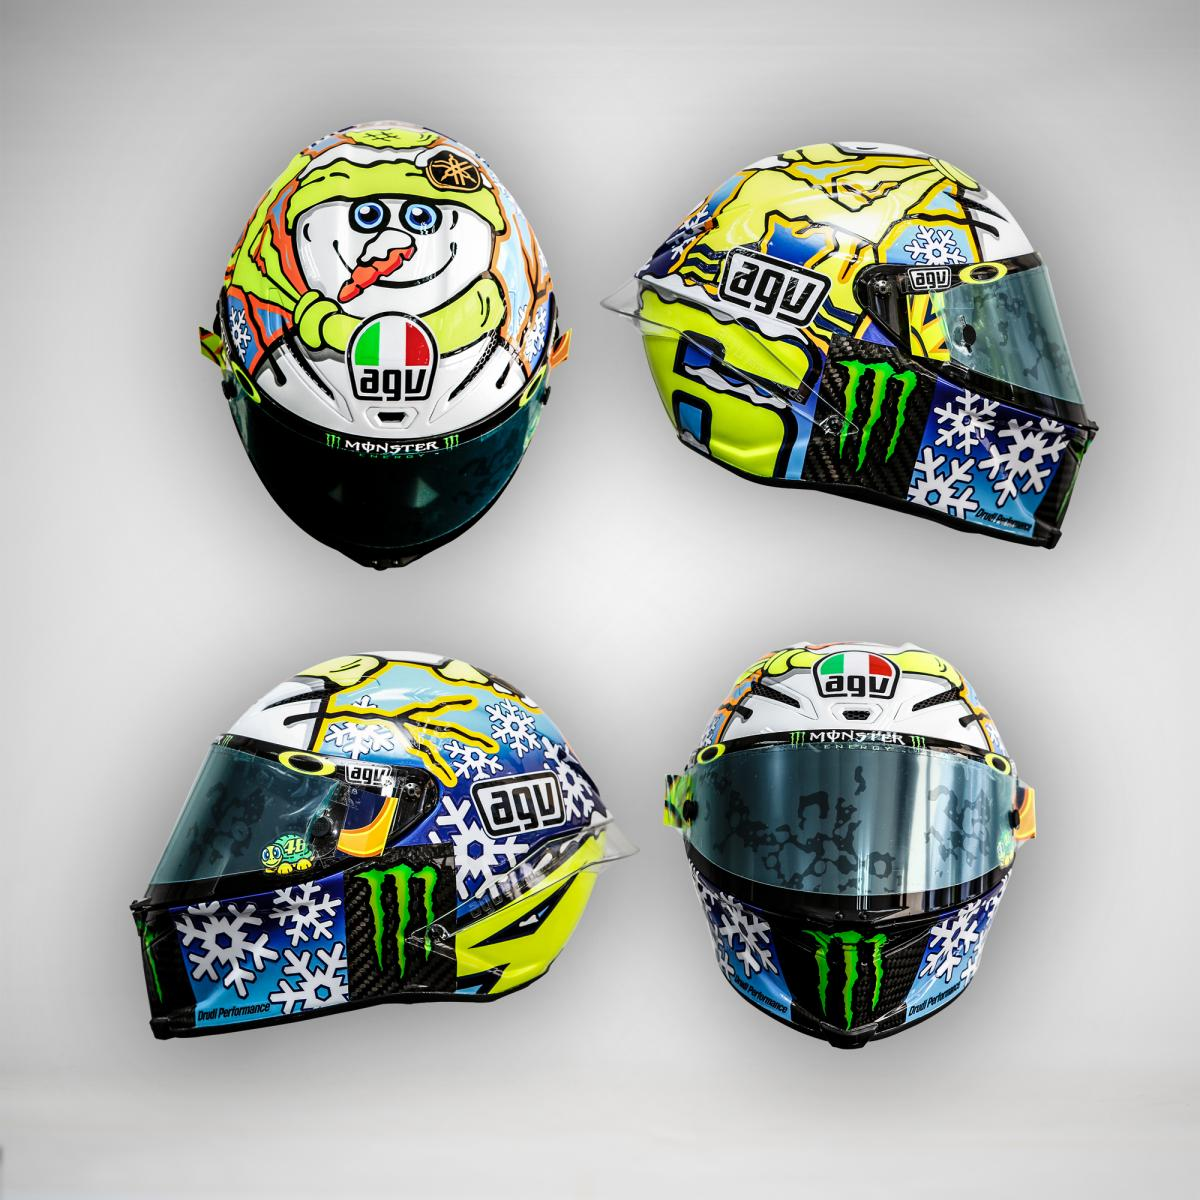 Rossi and Iannone Show Off New Helmets, Stoner Rides at Sepang - autoevolution